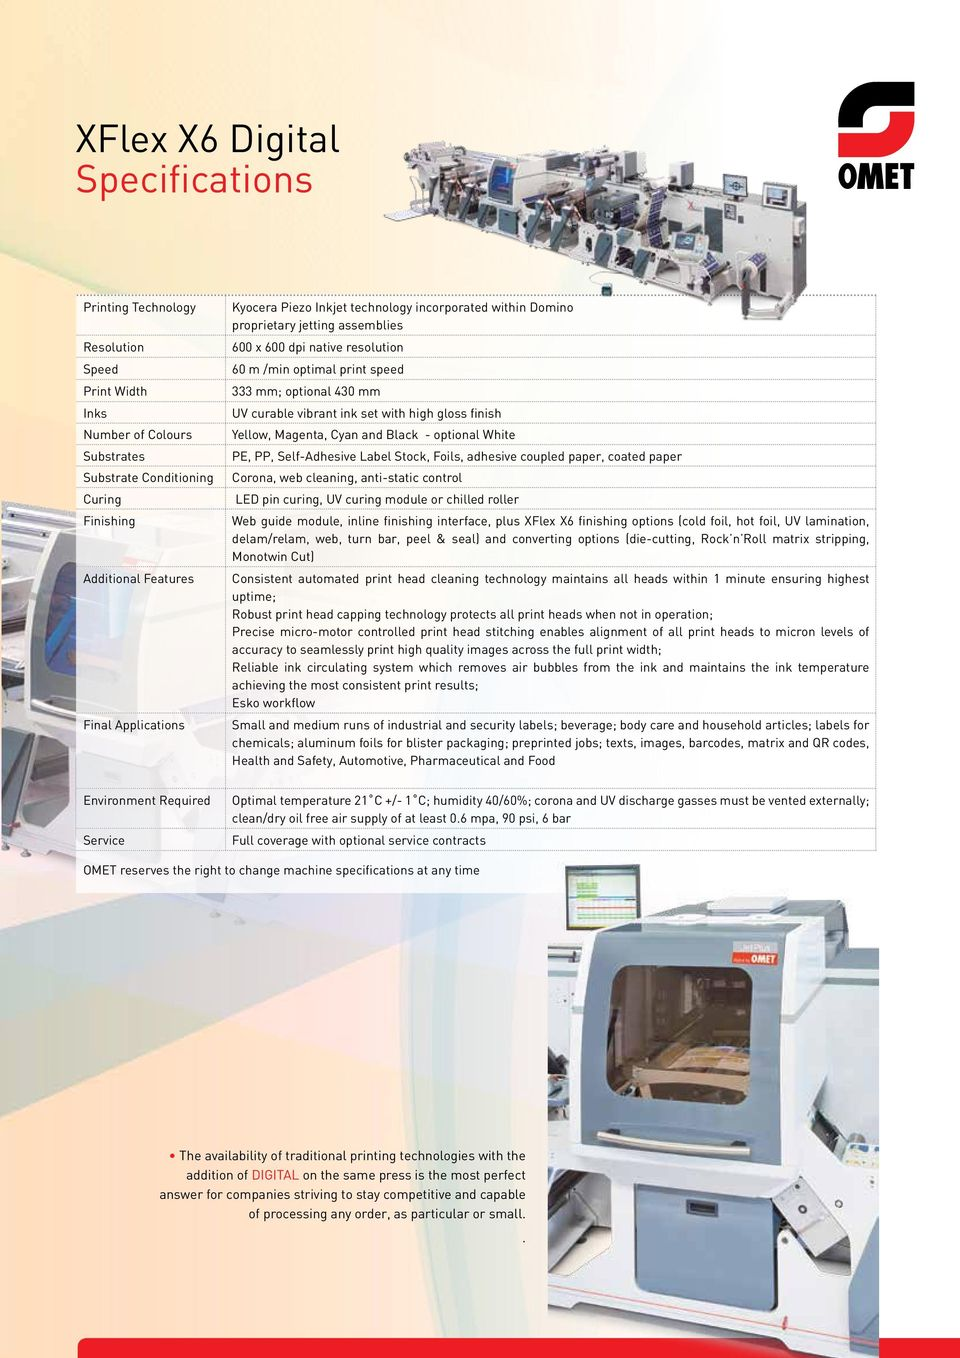 - optional White PE, PP, Self-Adhesive Label Stock, Foils, adhesive coupled paper, coated paper Corona, web cleaning, anti-static control Curing LED pin curing, UV curing module or chilled roller